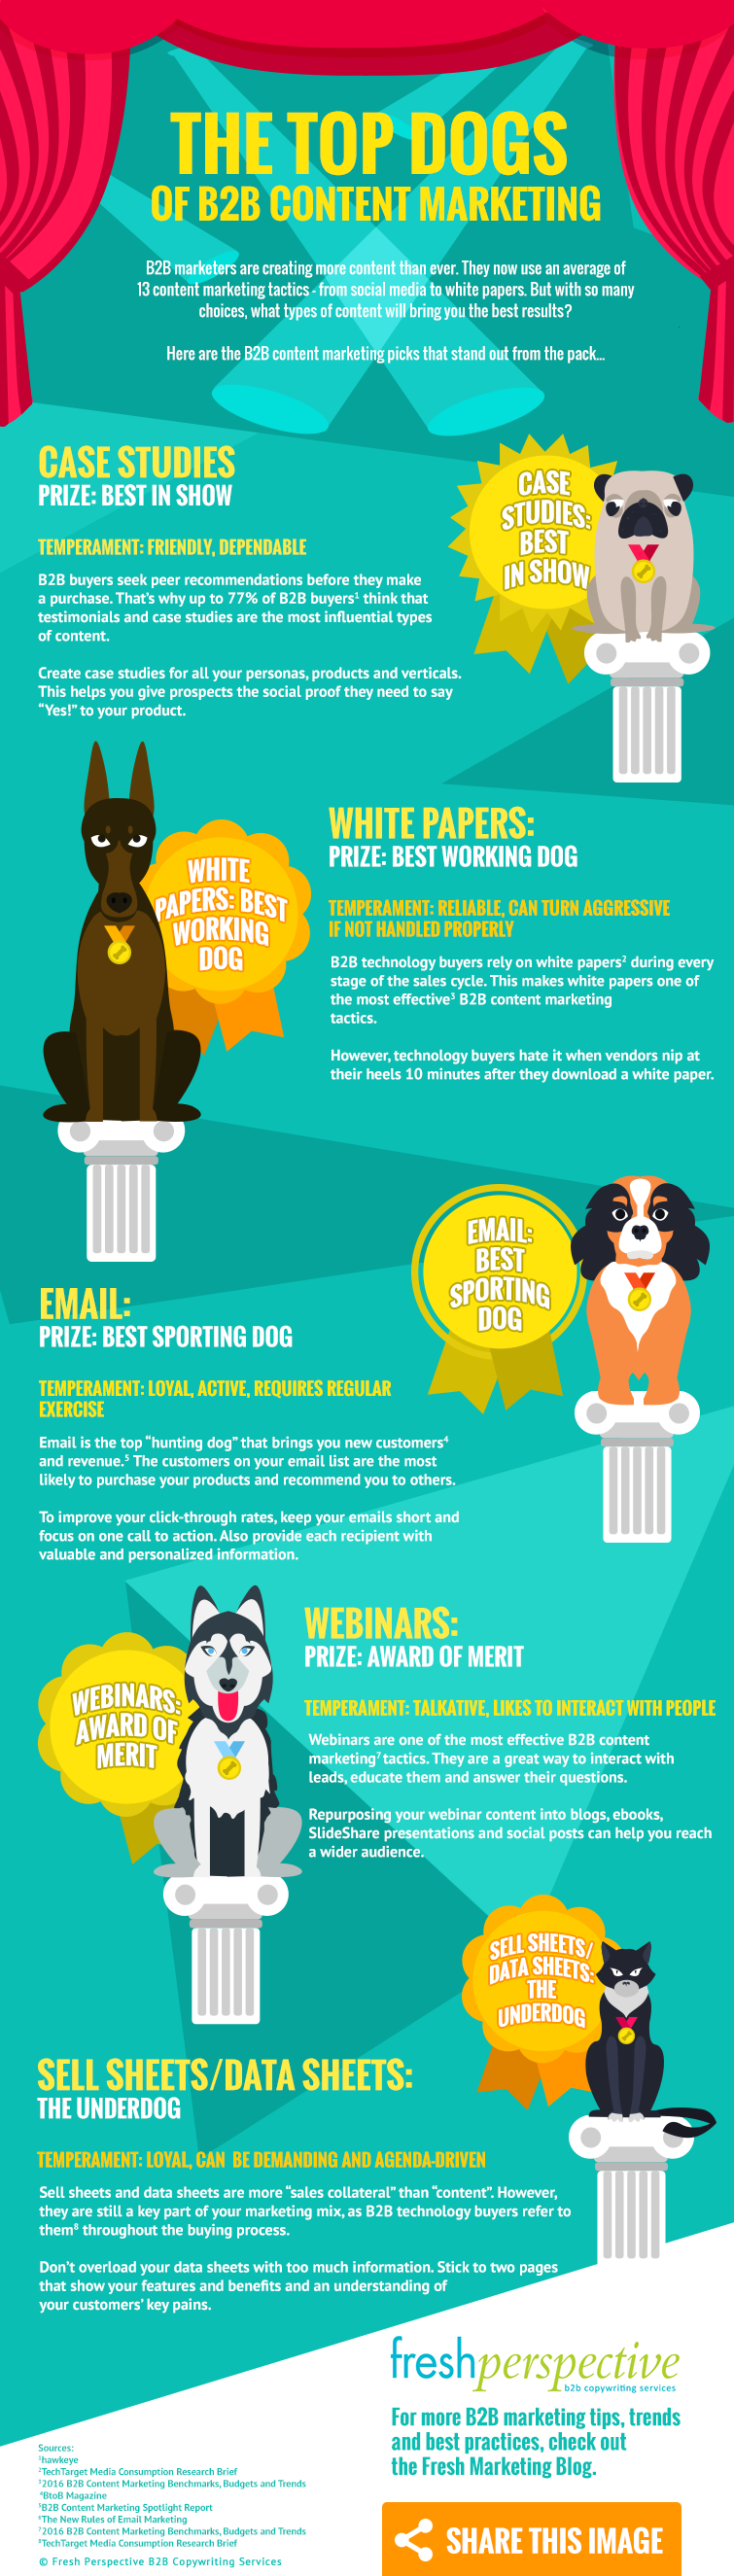 b2b-content-marketing-infographic-from-fresh-perspective.png